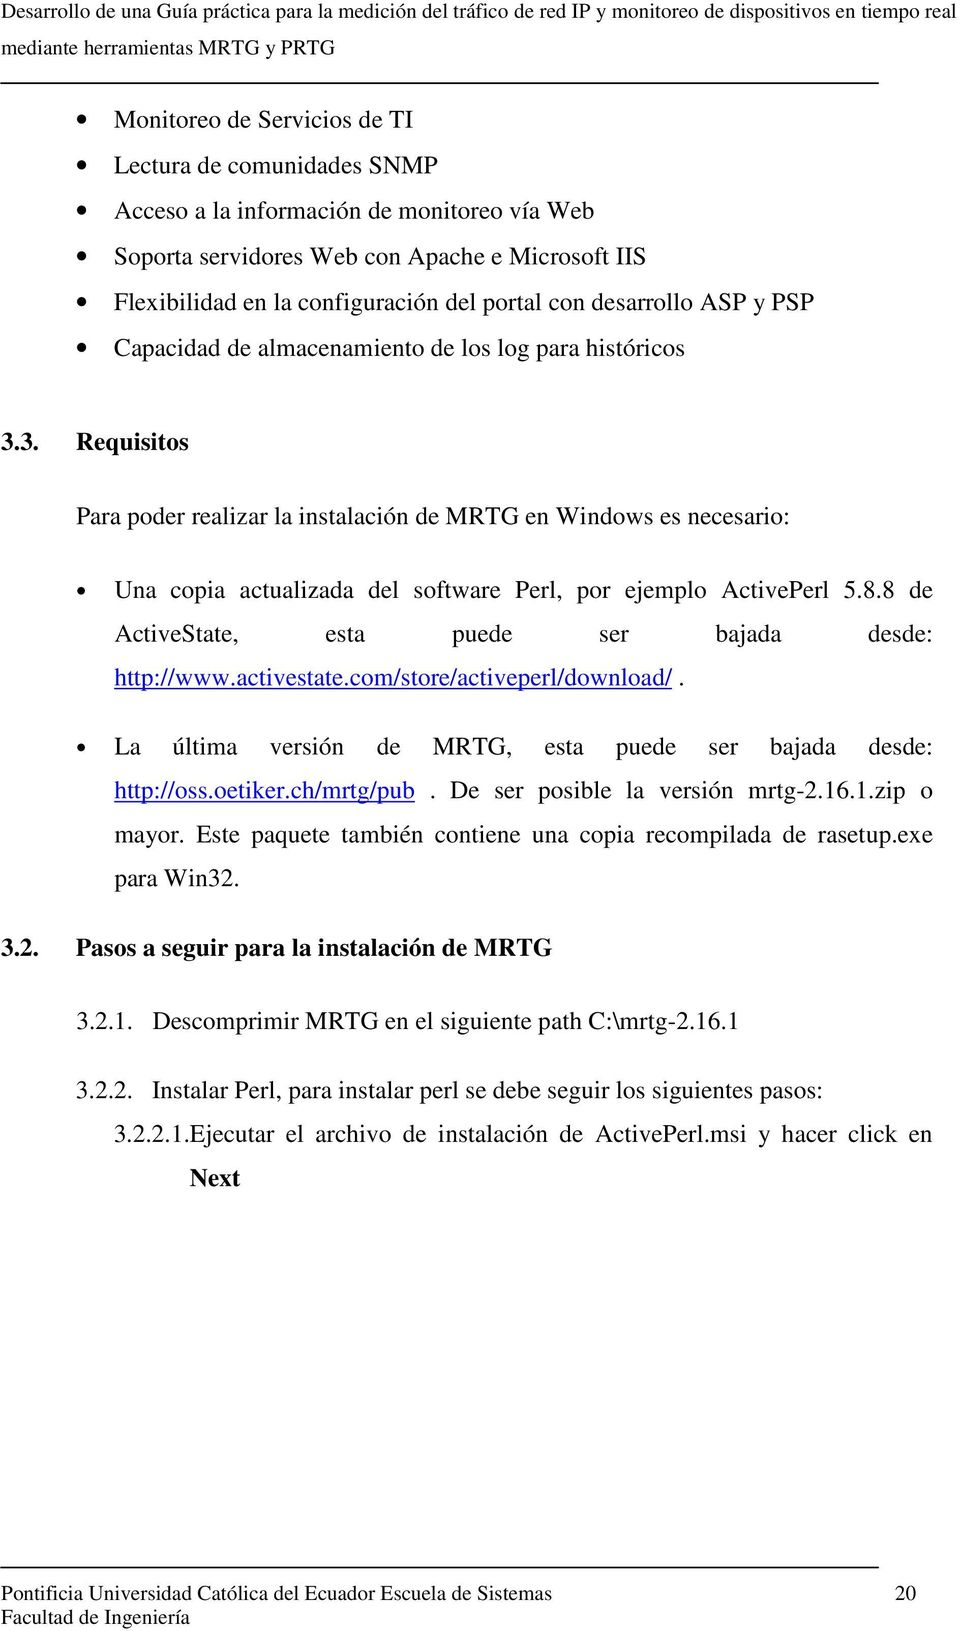 3. Requisitos Para poder realizar la instalación de MRTG en Windows es necesario: Una copia actualizada del software Perl, por ejemplo ActivePerl 5.8.